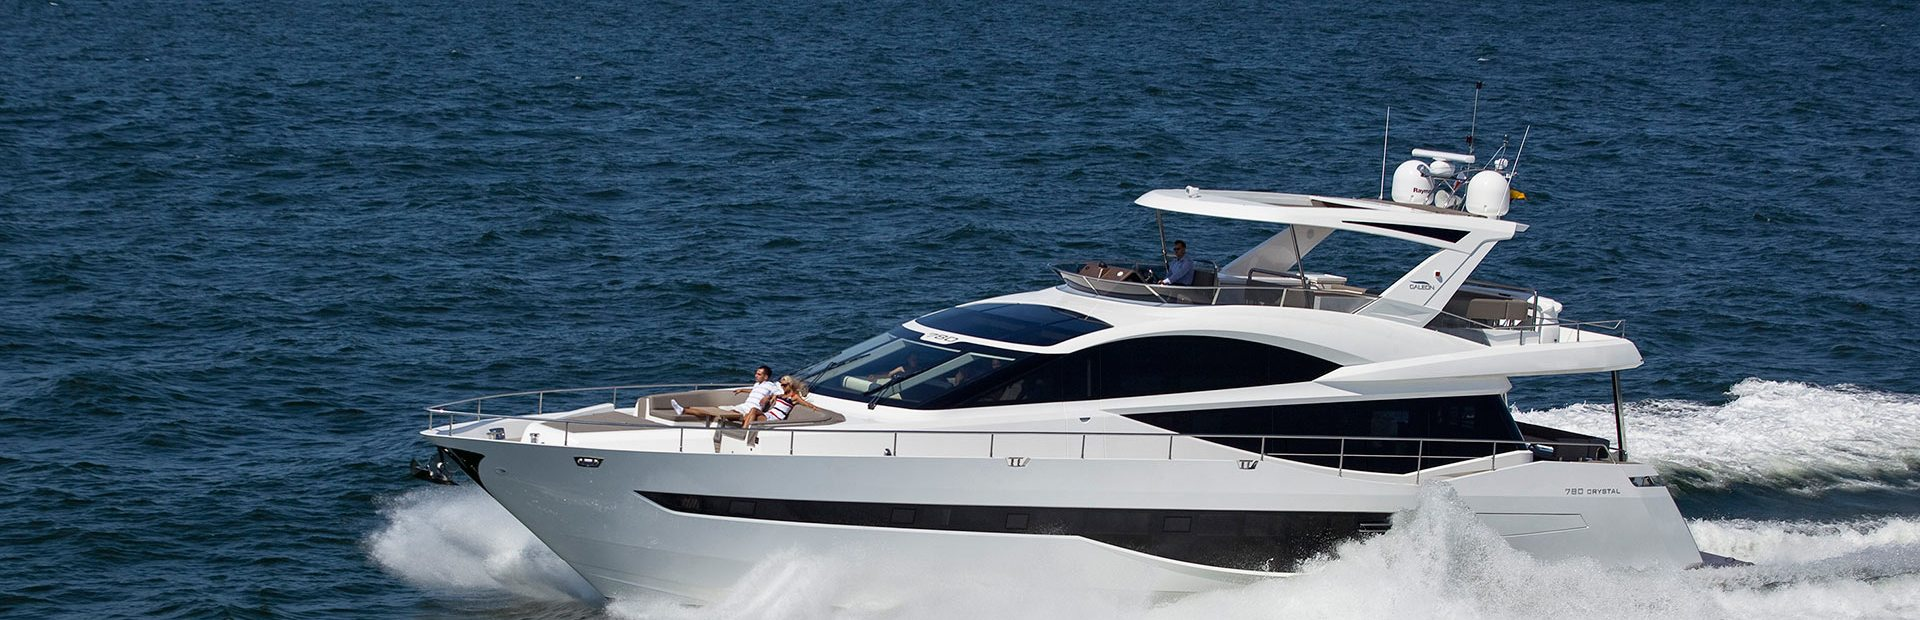 780 Crystal Yacht Charter